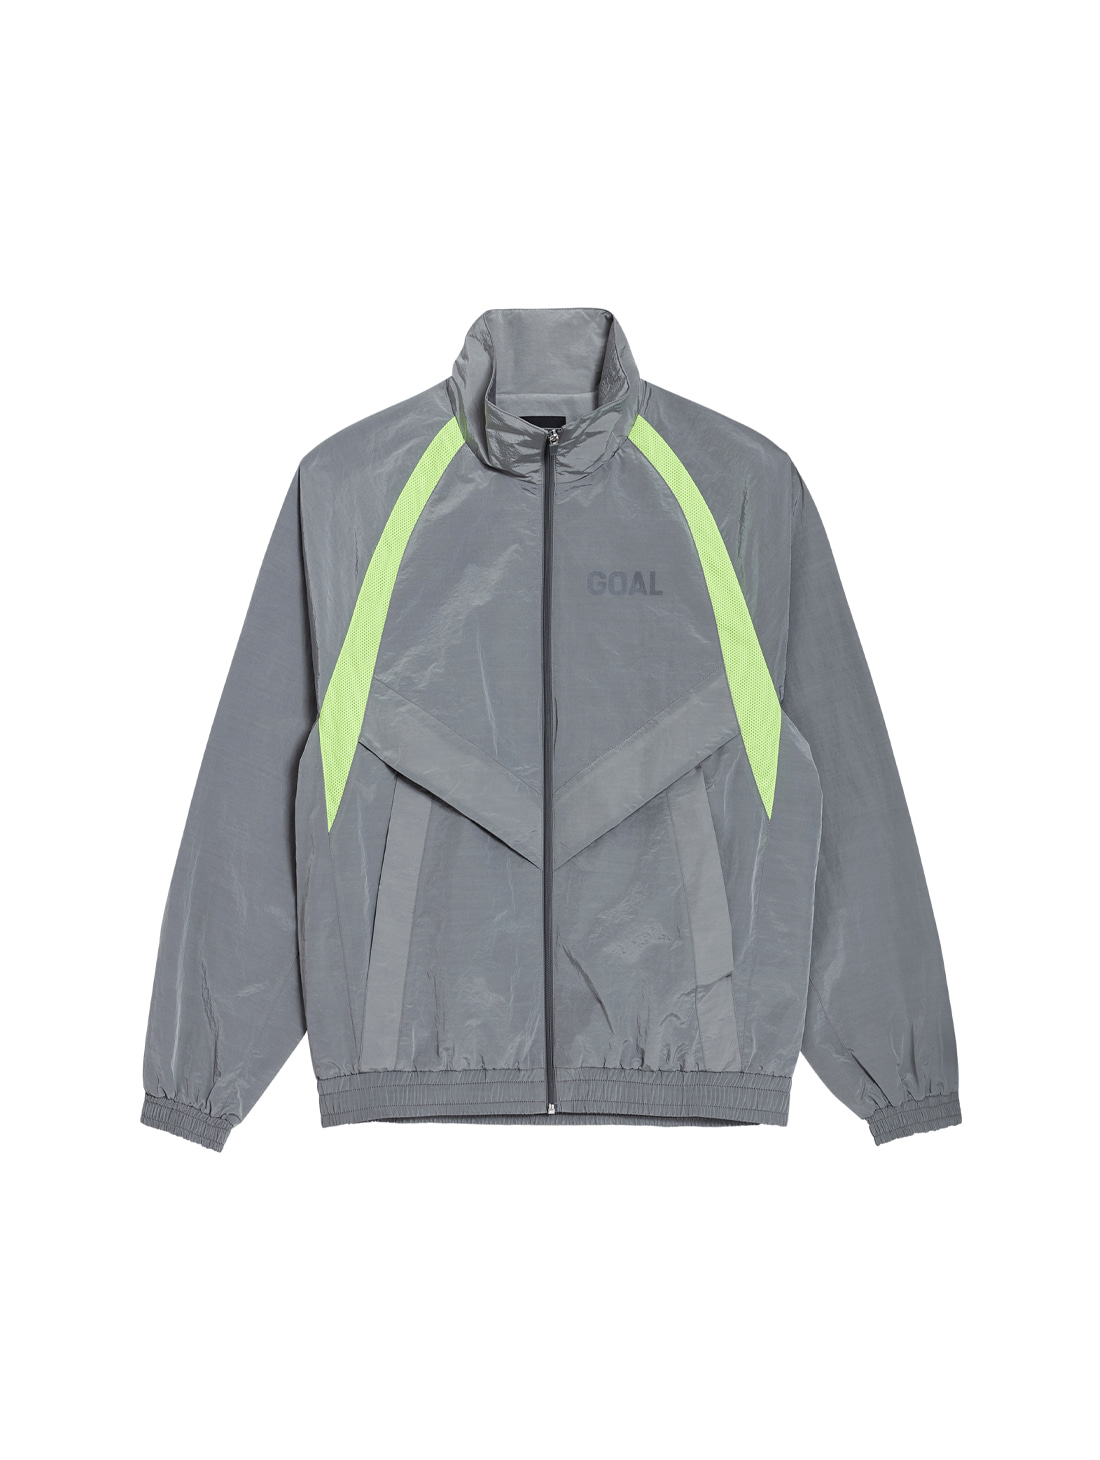 WARMUP JACKET - GREY